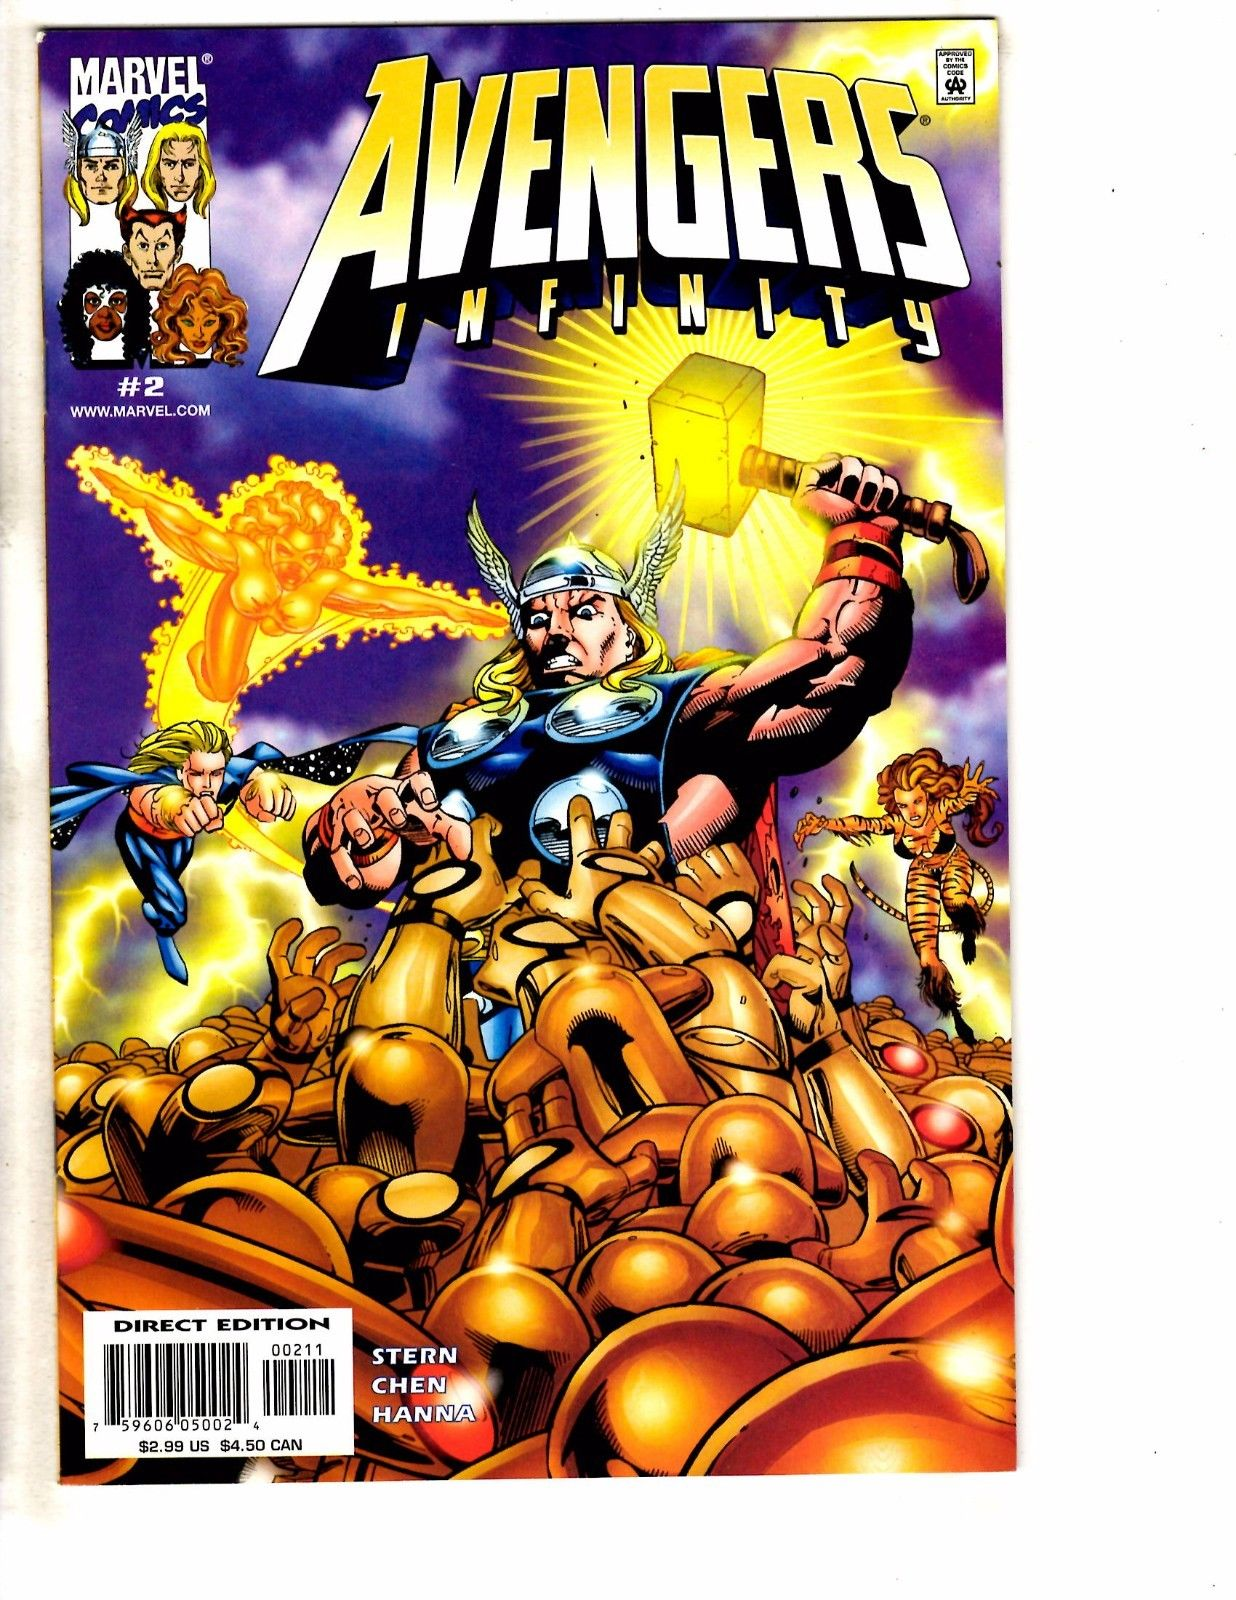 5 Comic Book Price Guides by Overstreet No 5 6 10 11 and 13